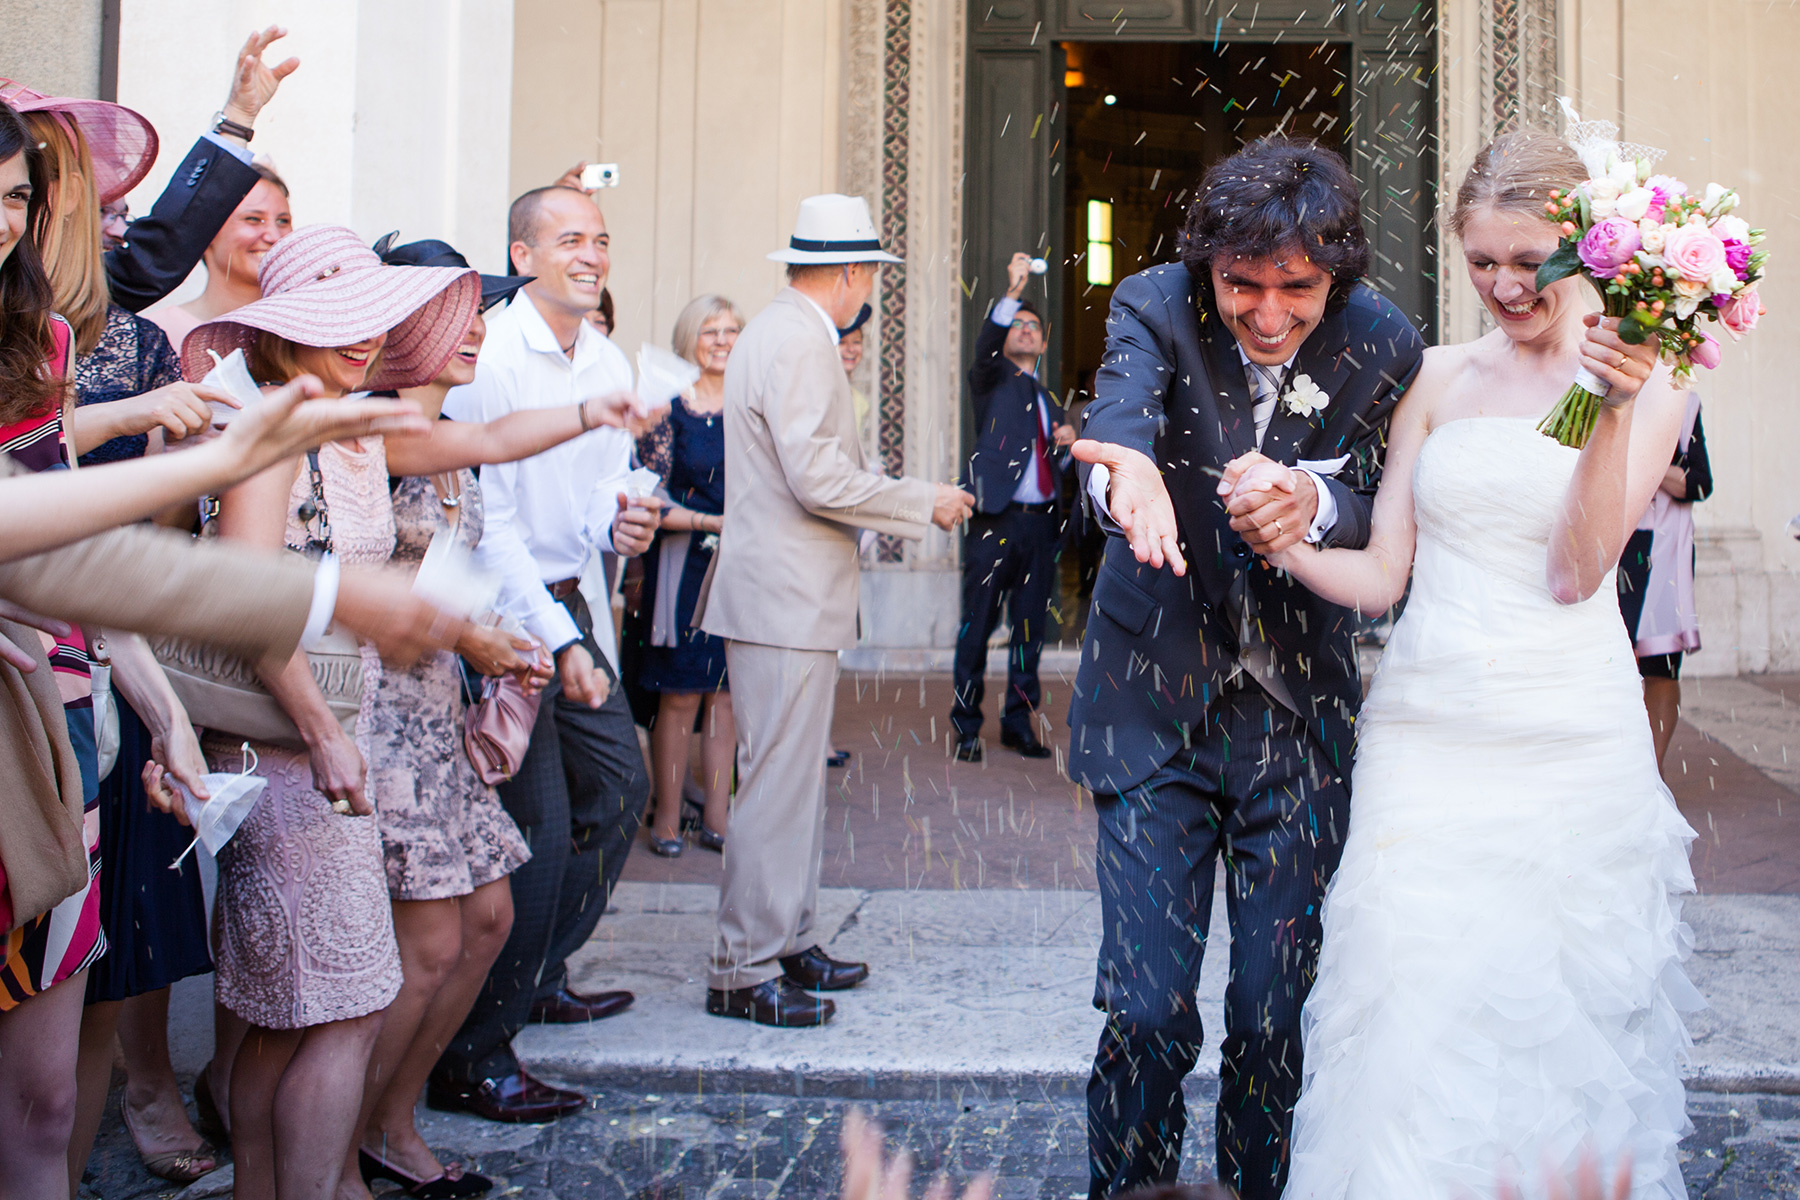 denation wedding in Europe, Rome, Italy specifically where the bride and groom are exiting the church and rise is thrown on them